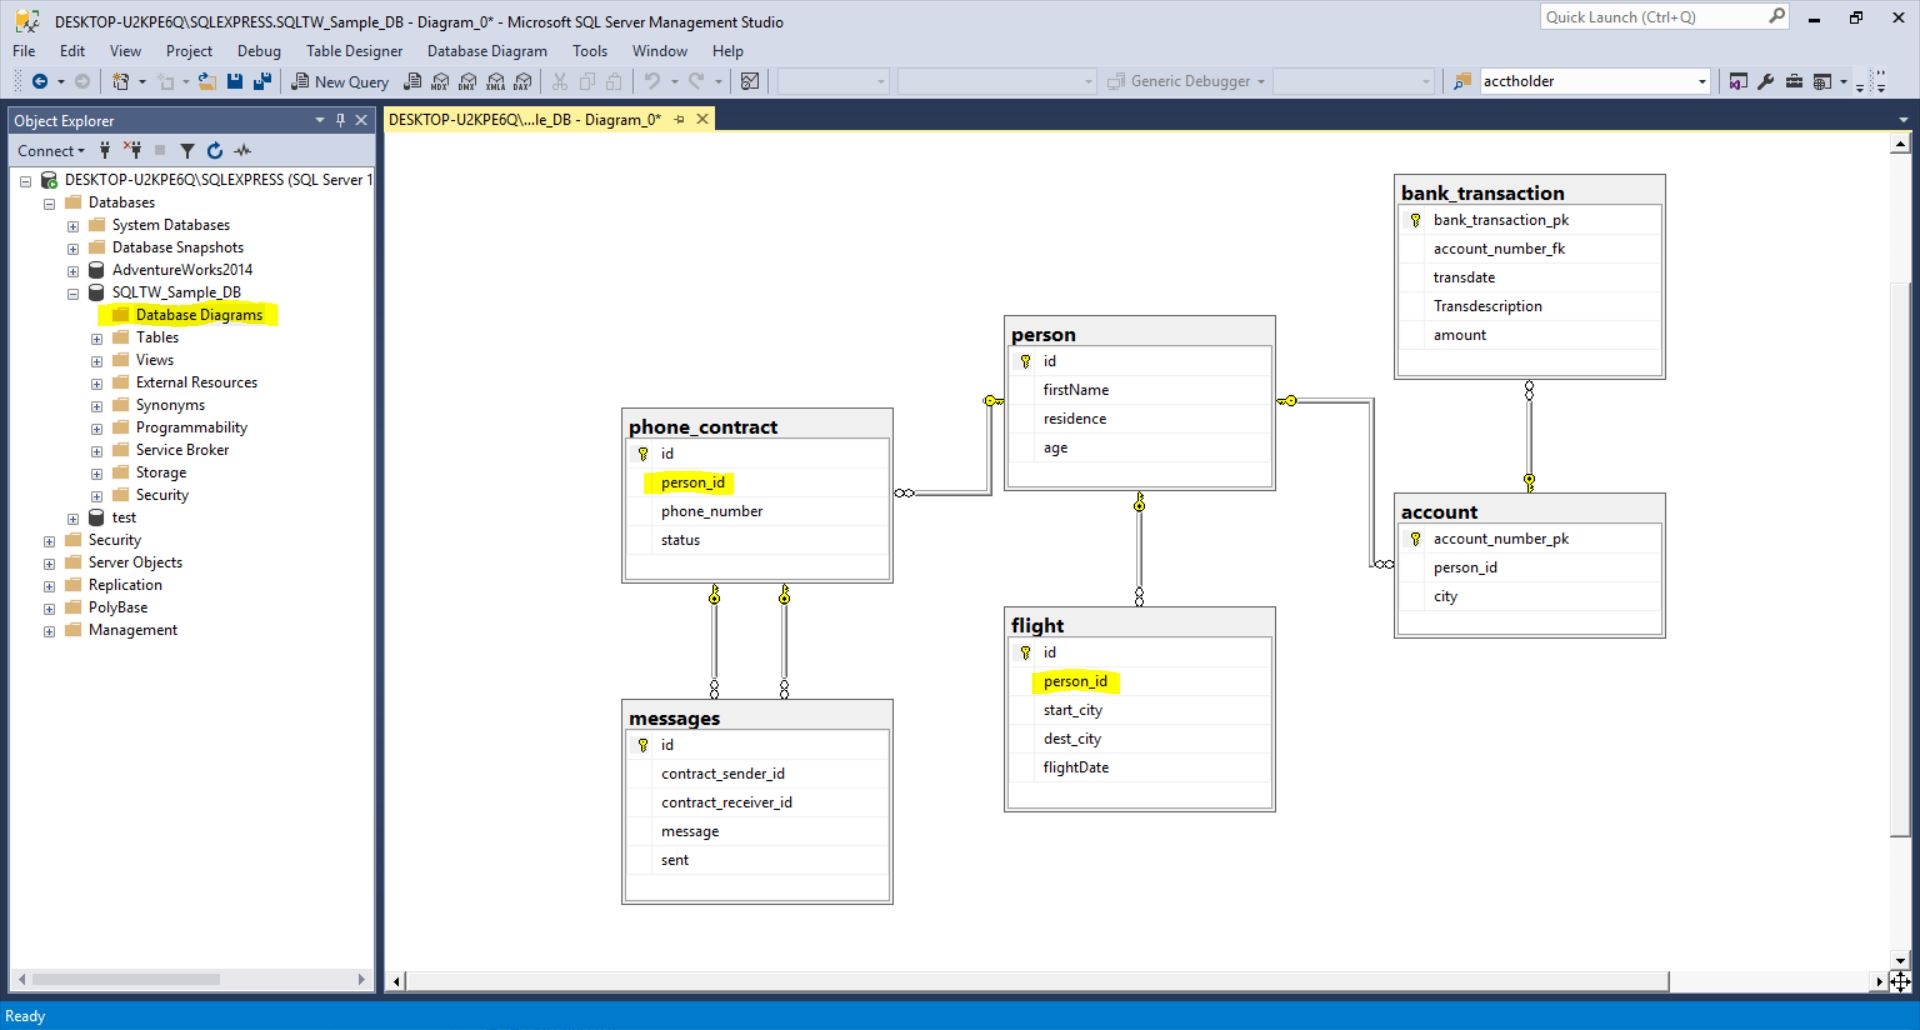 Database Diagram showing tables that have relationships with the  person  table. Both the  phone_contract  table and the  flight  table have relationships with the  person  table.